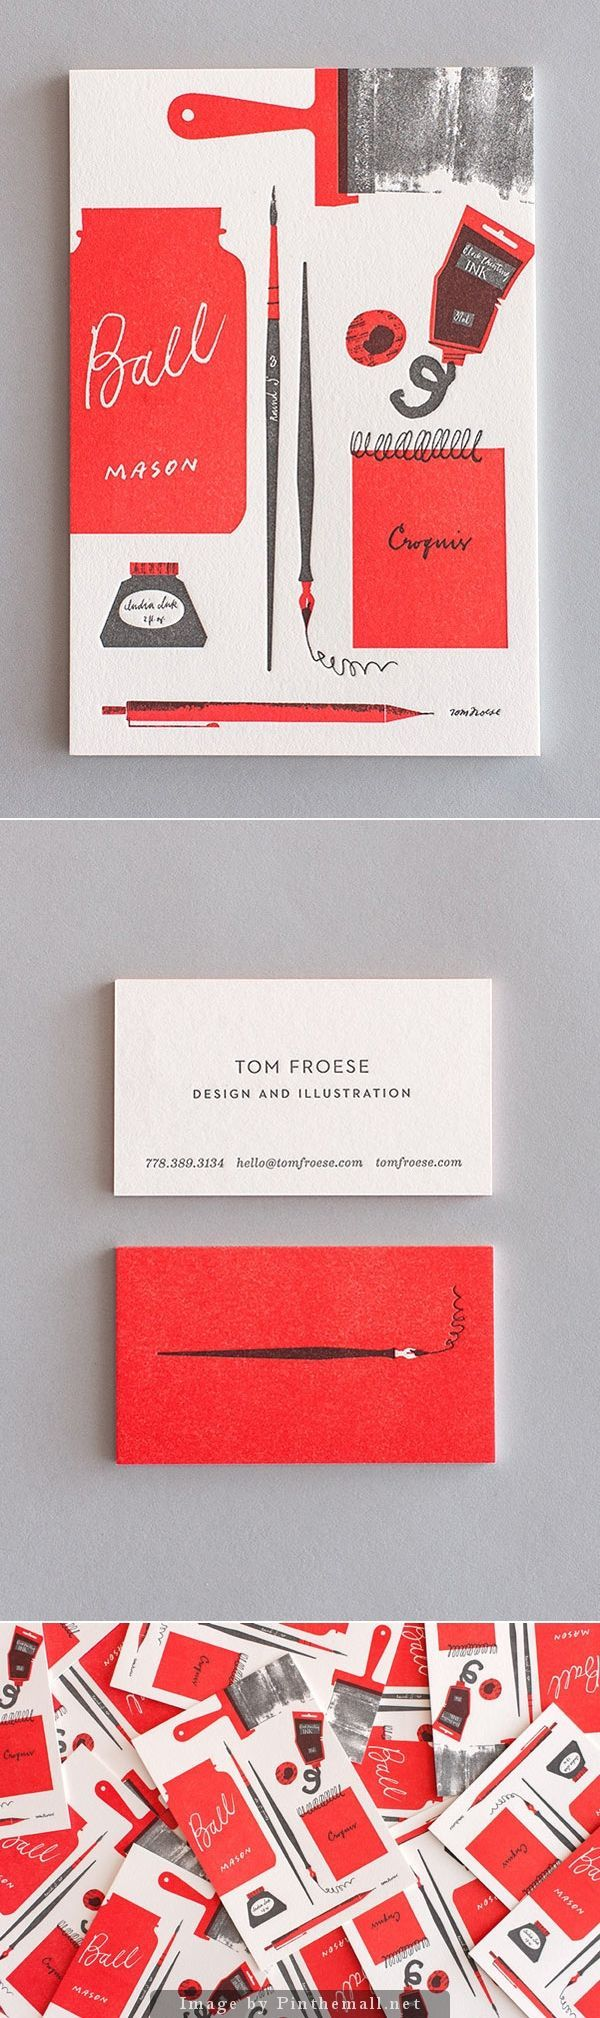 Tom Froese's Illustrated Personal Stationery Design